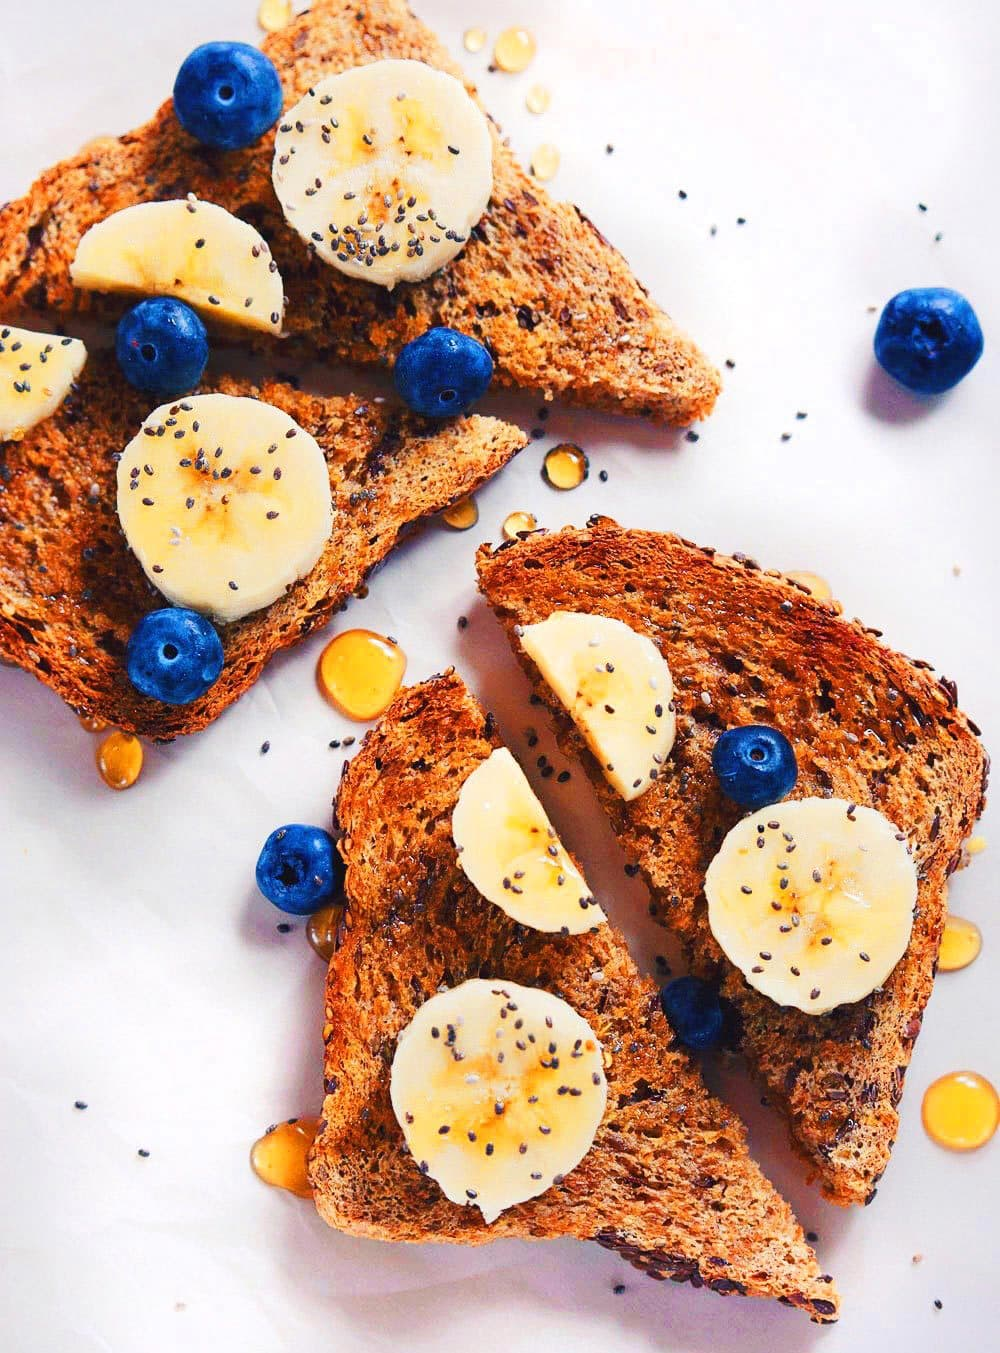 Coconut Oil Chia Toast with Fresh Fruit - My absolute favorite breakfast!A quick, wholesome way to eat a breakfast packed delicious fruit and healthy ingredients! SO yummy. | asimplepalate.com